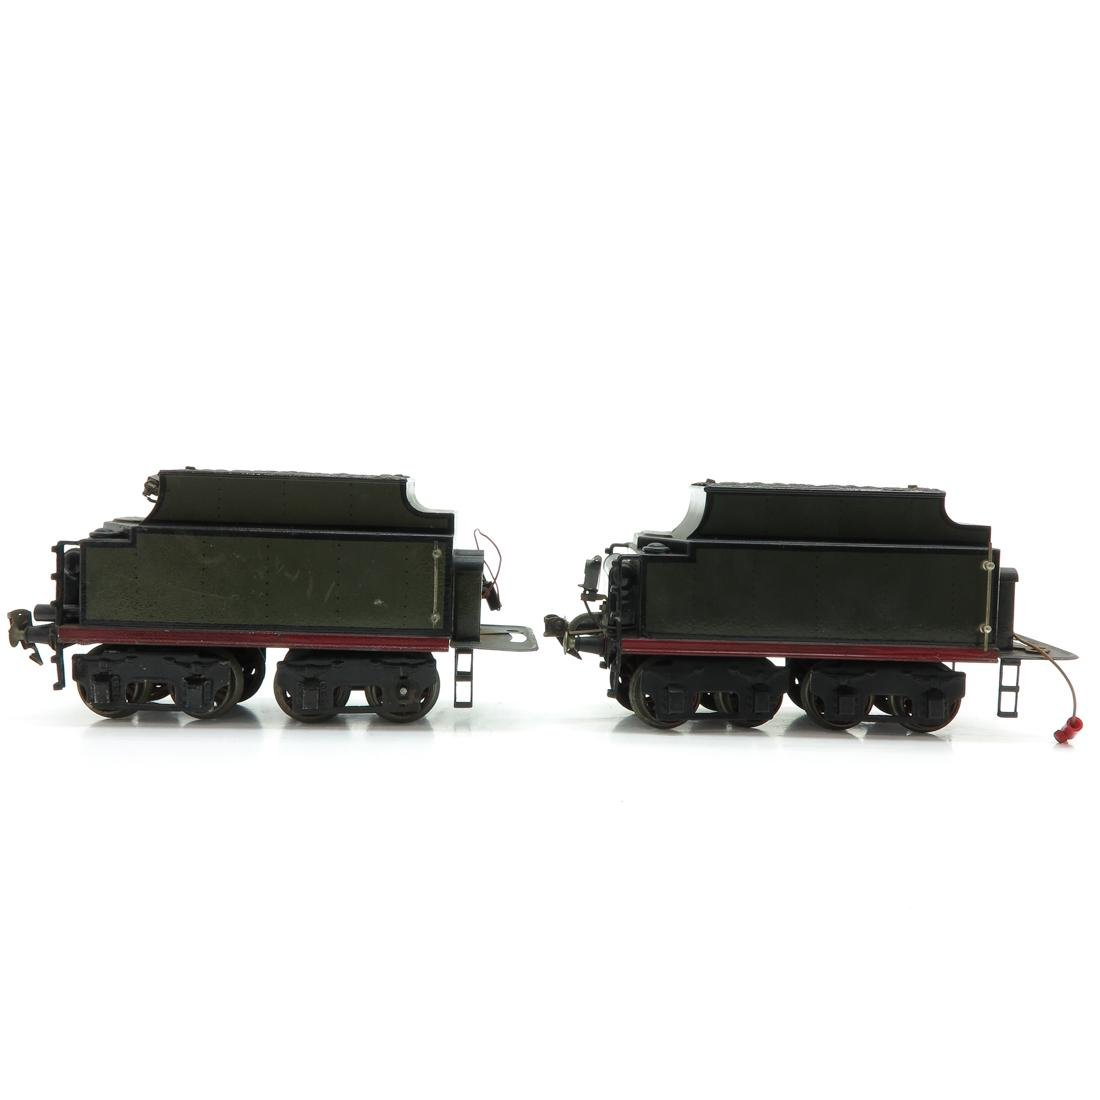 Lot of 2 Vintage Marklin Train Cars